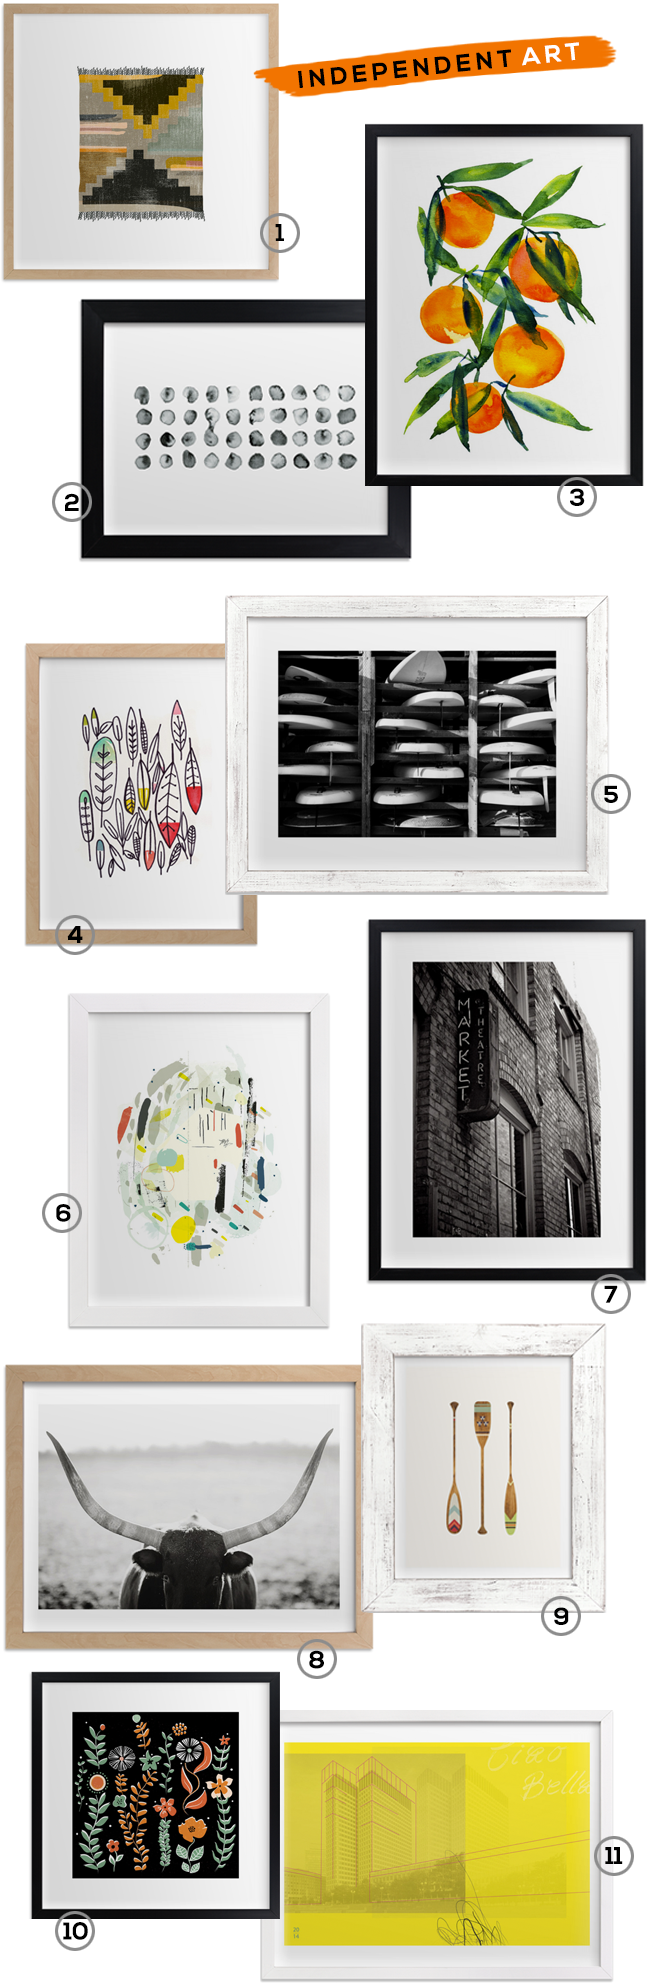 Independent Art Forever + a $  500 Giveaway from Minted and Bubby & Bean!